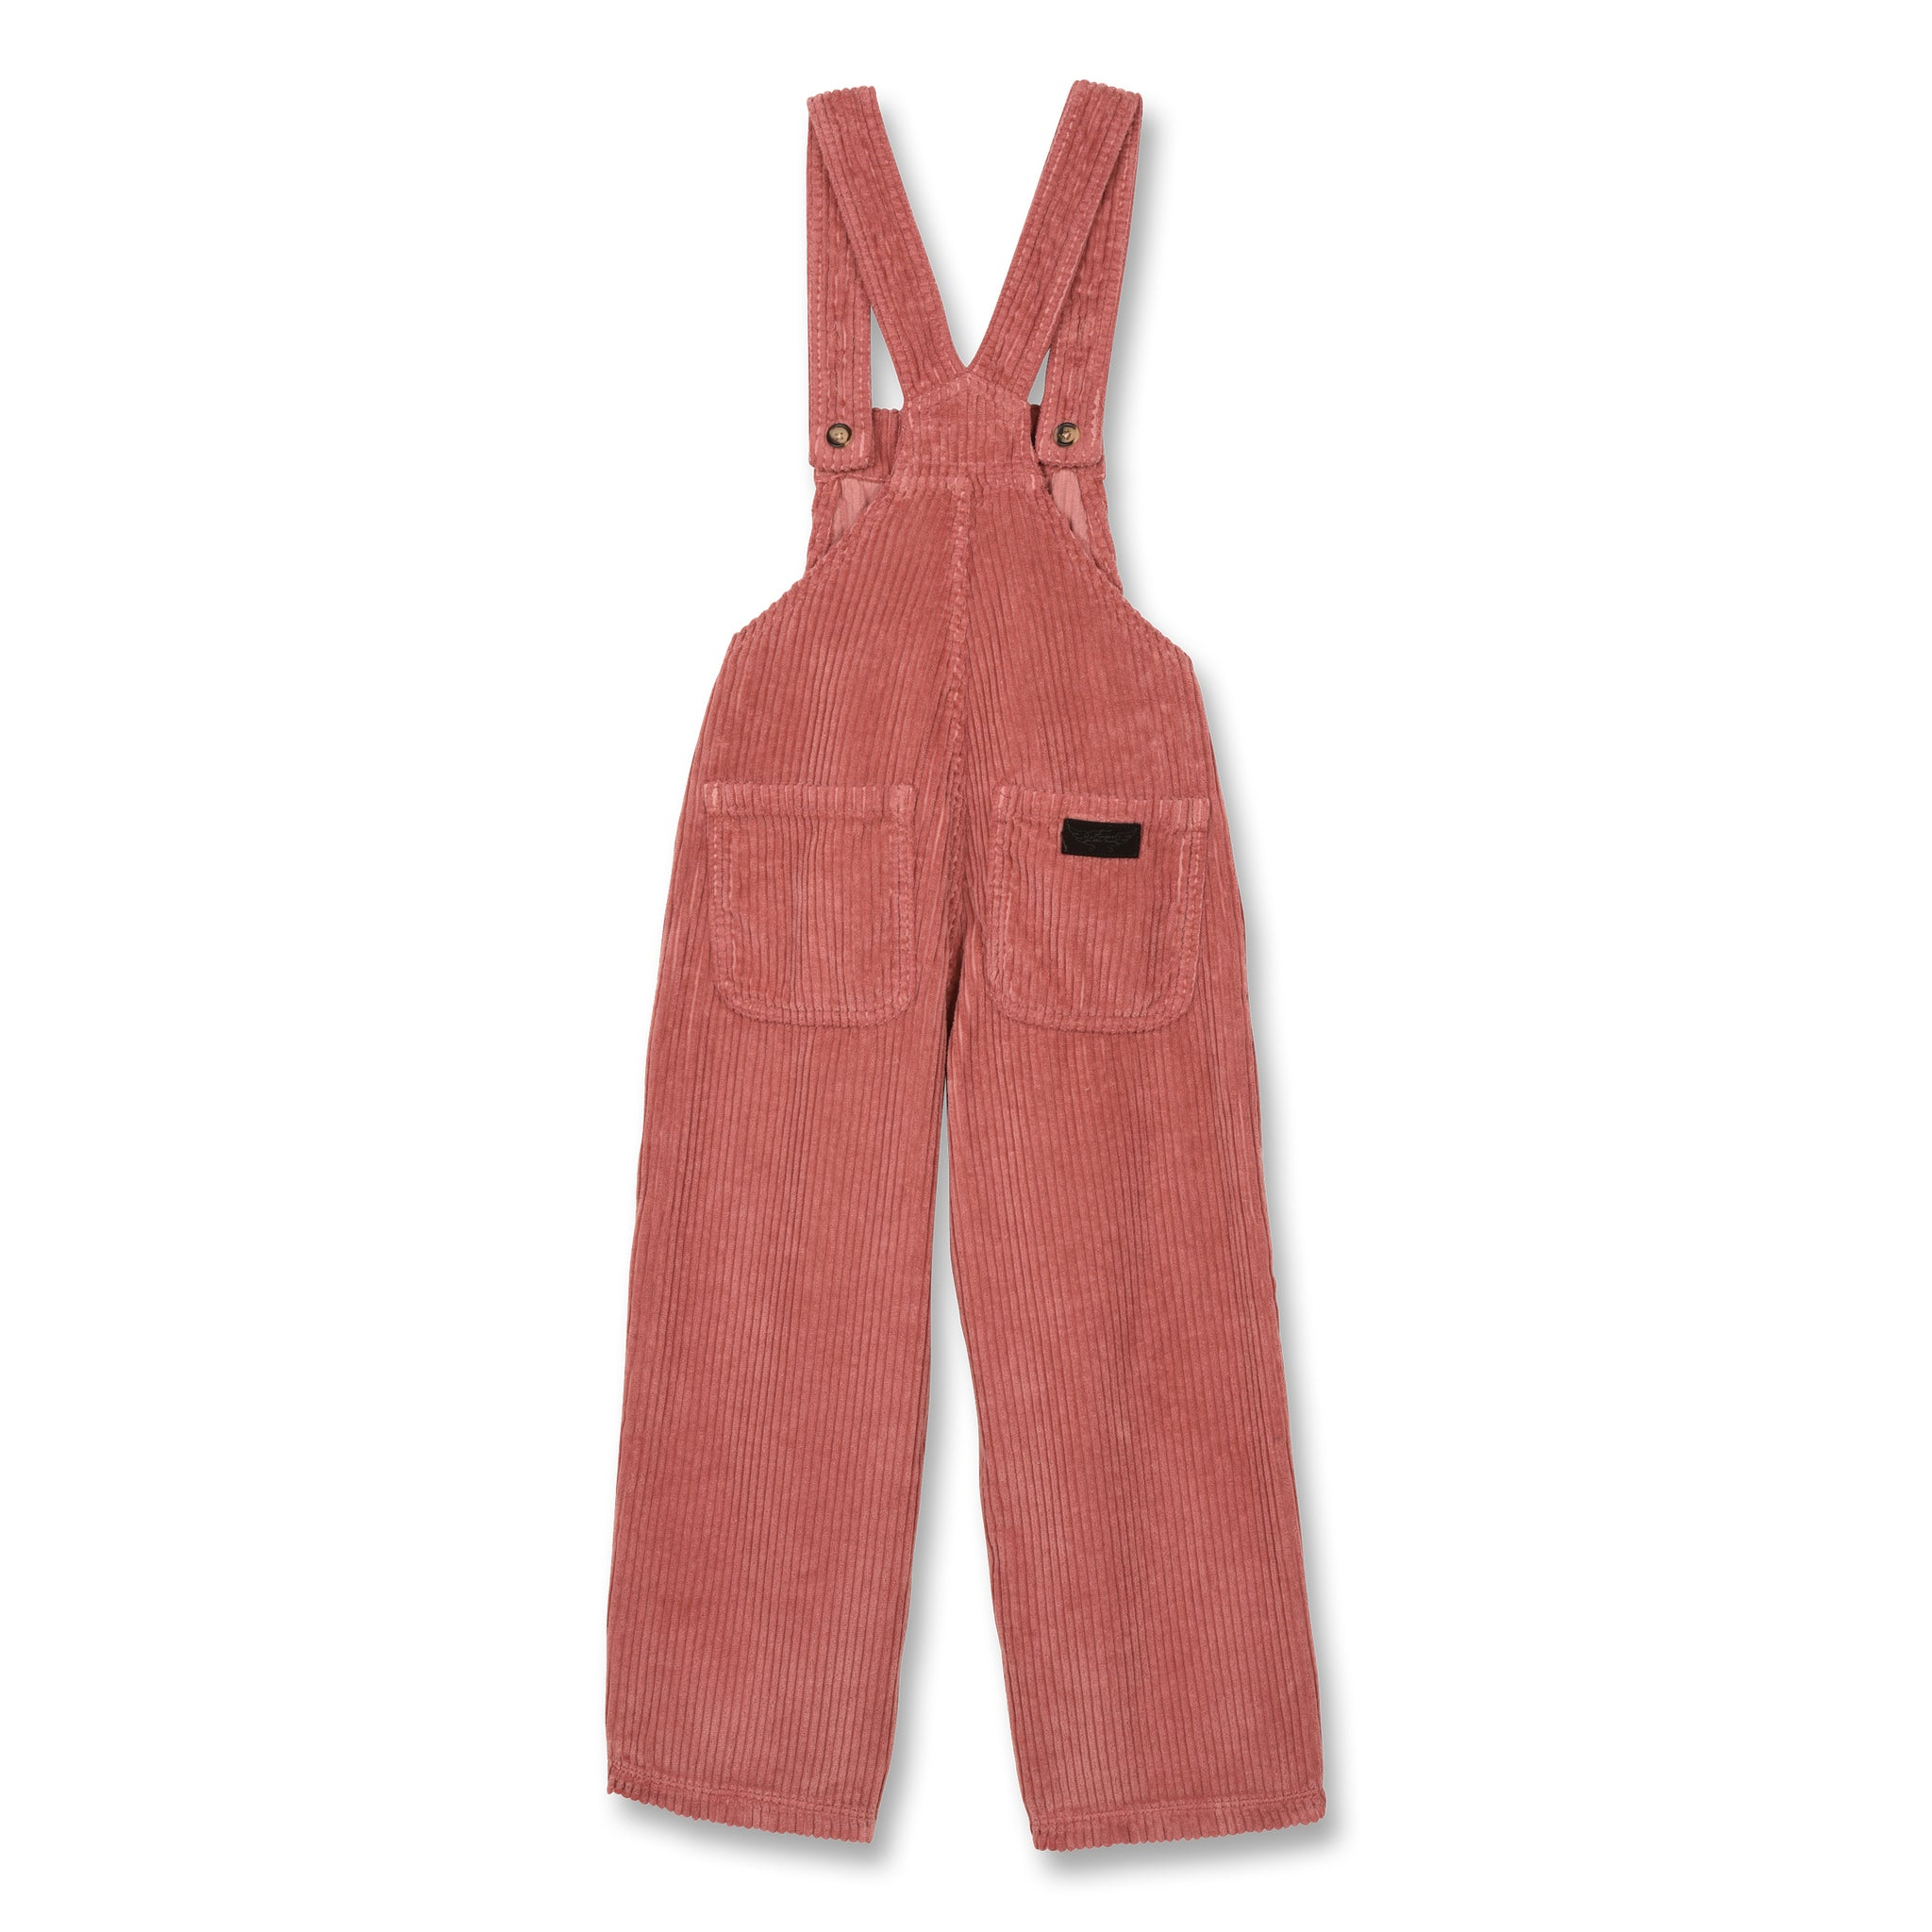 NEW WORKER Old Pink Jumbo Cord - Loose Fit Overall 2